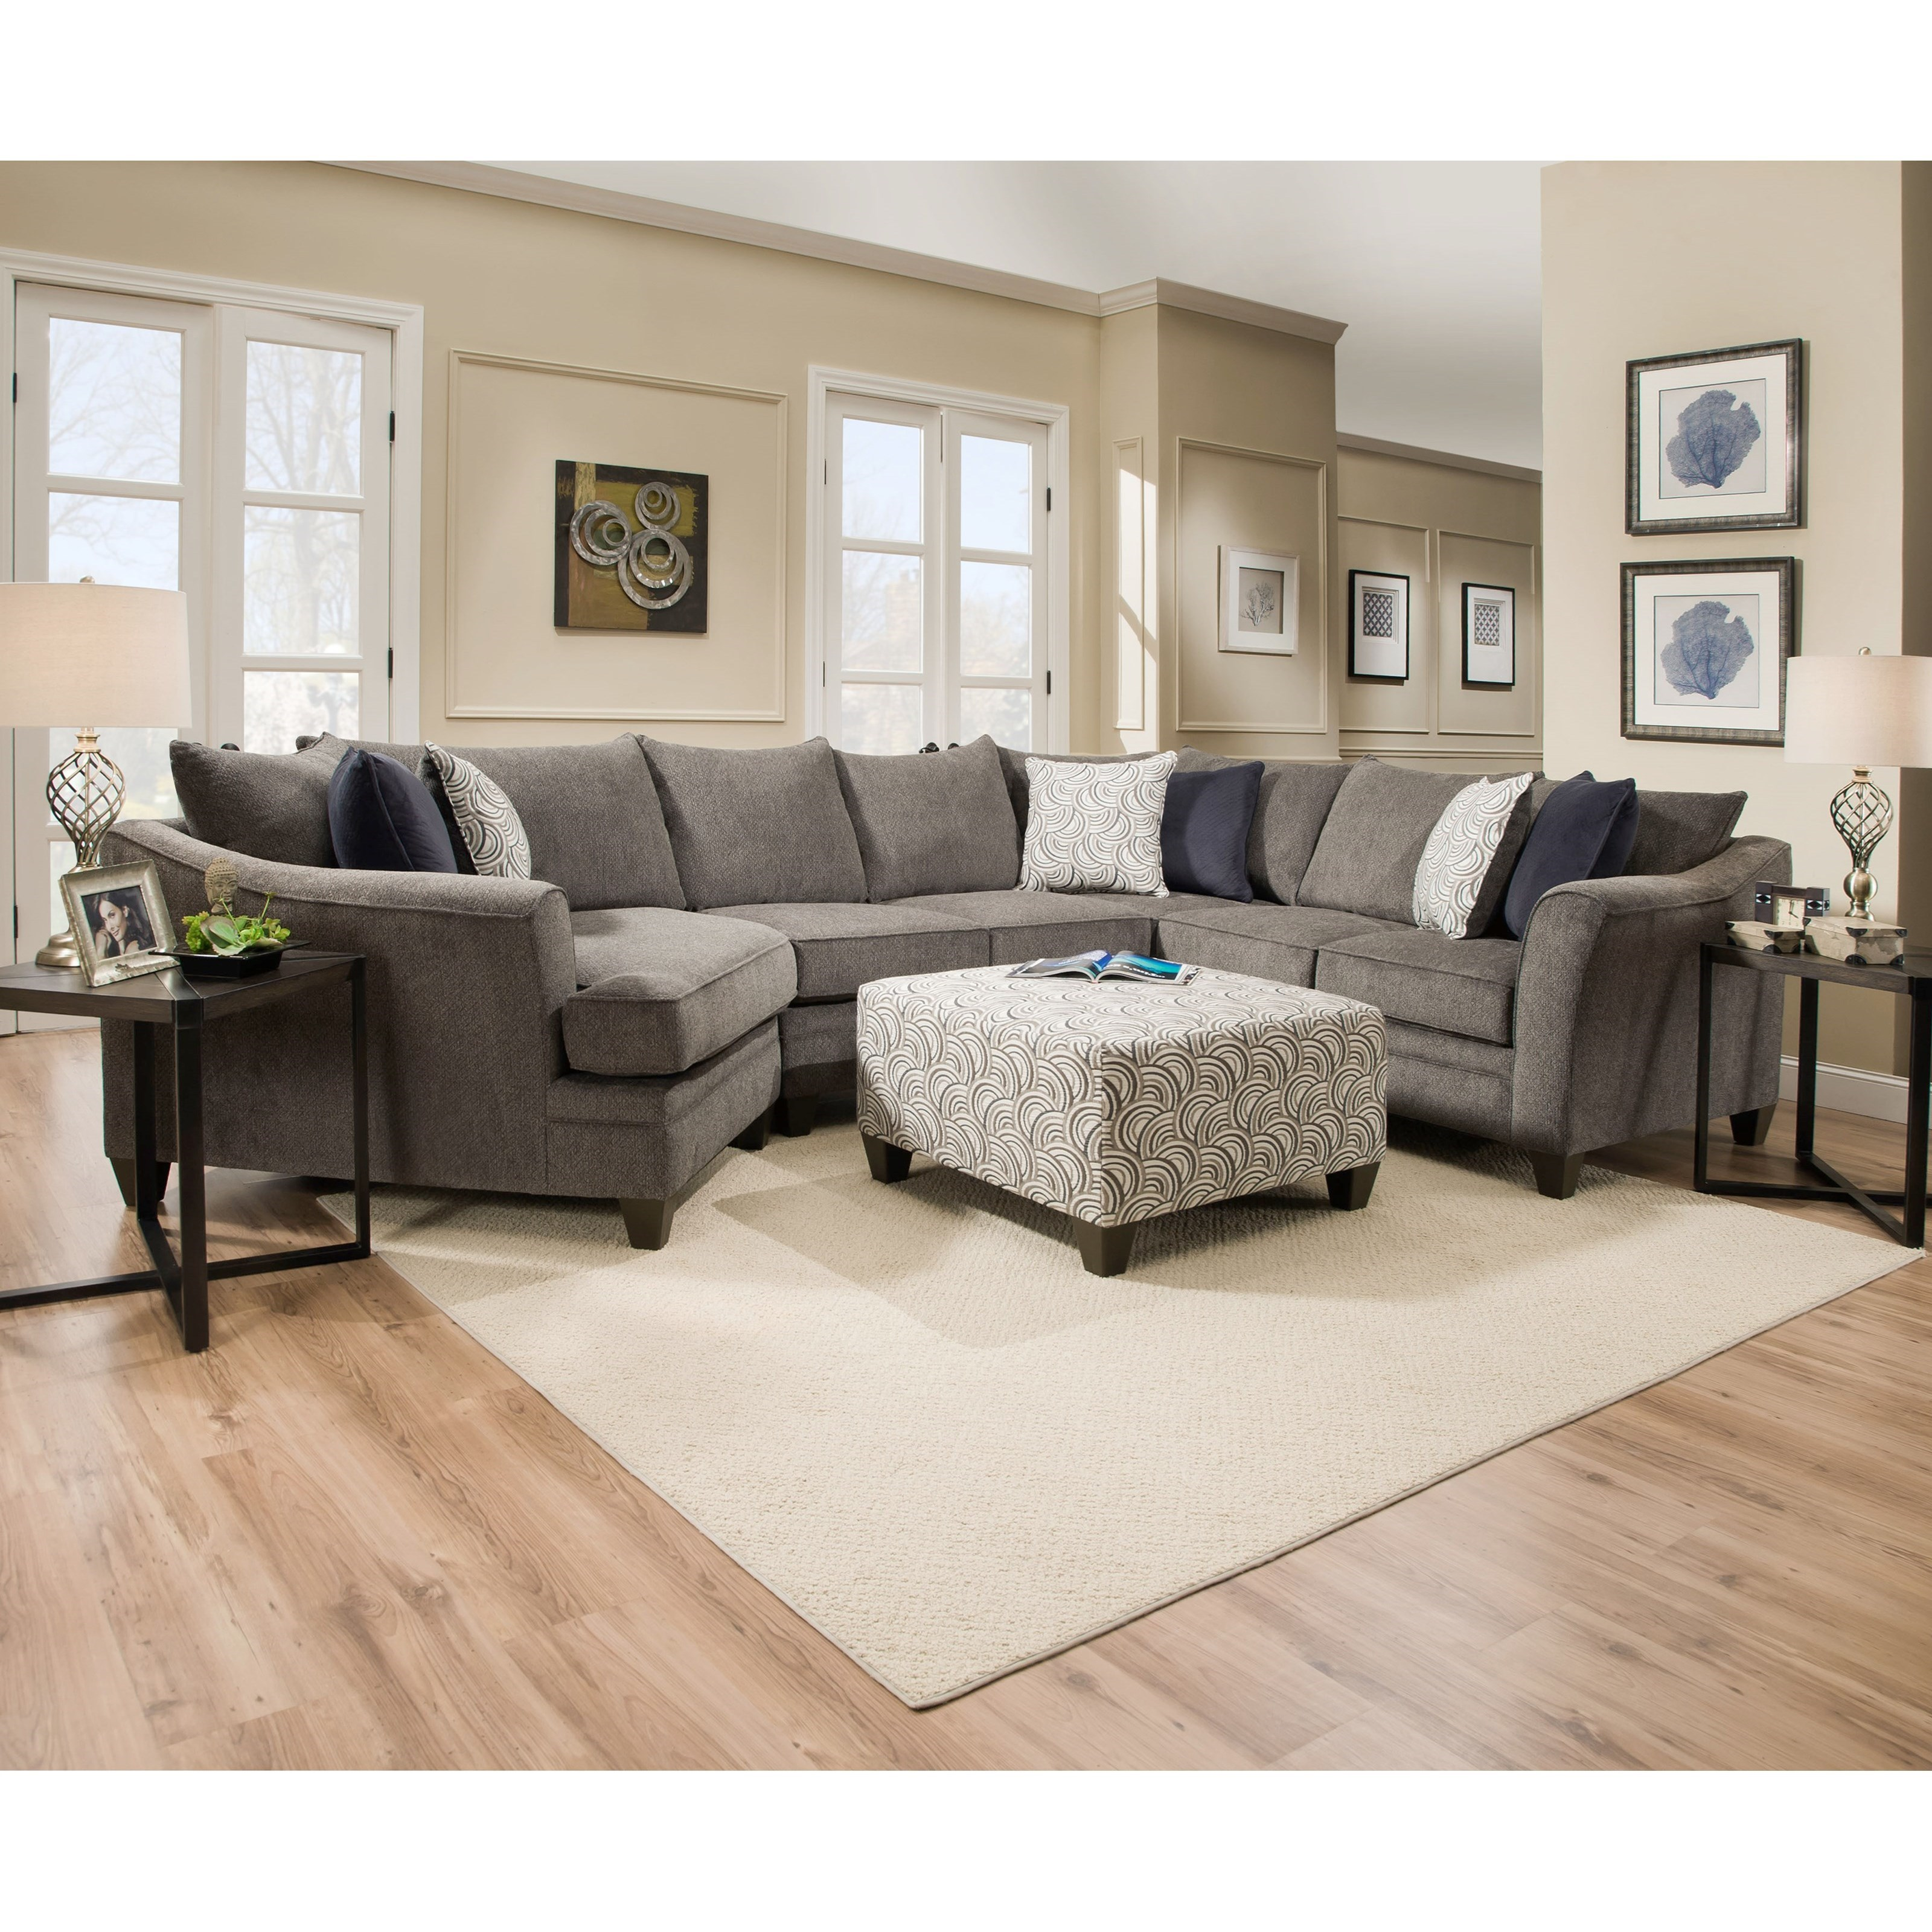 ... Transitional Sectional Sofa. Ottoman and Tables Not Included  sc 1 st  Dunk u0026 Bright Furniture : transitional sectional sofa - Sectionals, Sofas & Couches